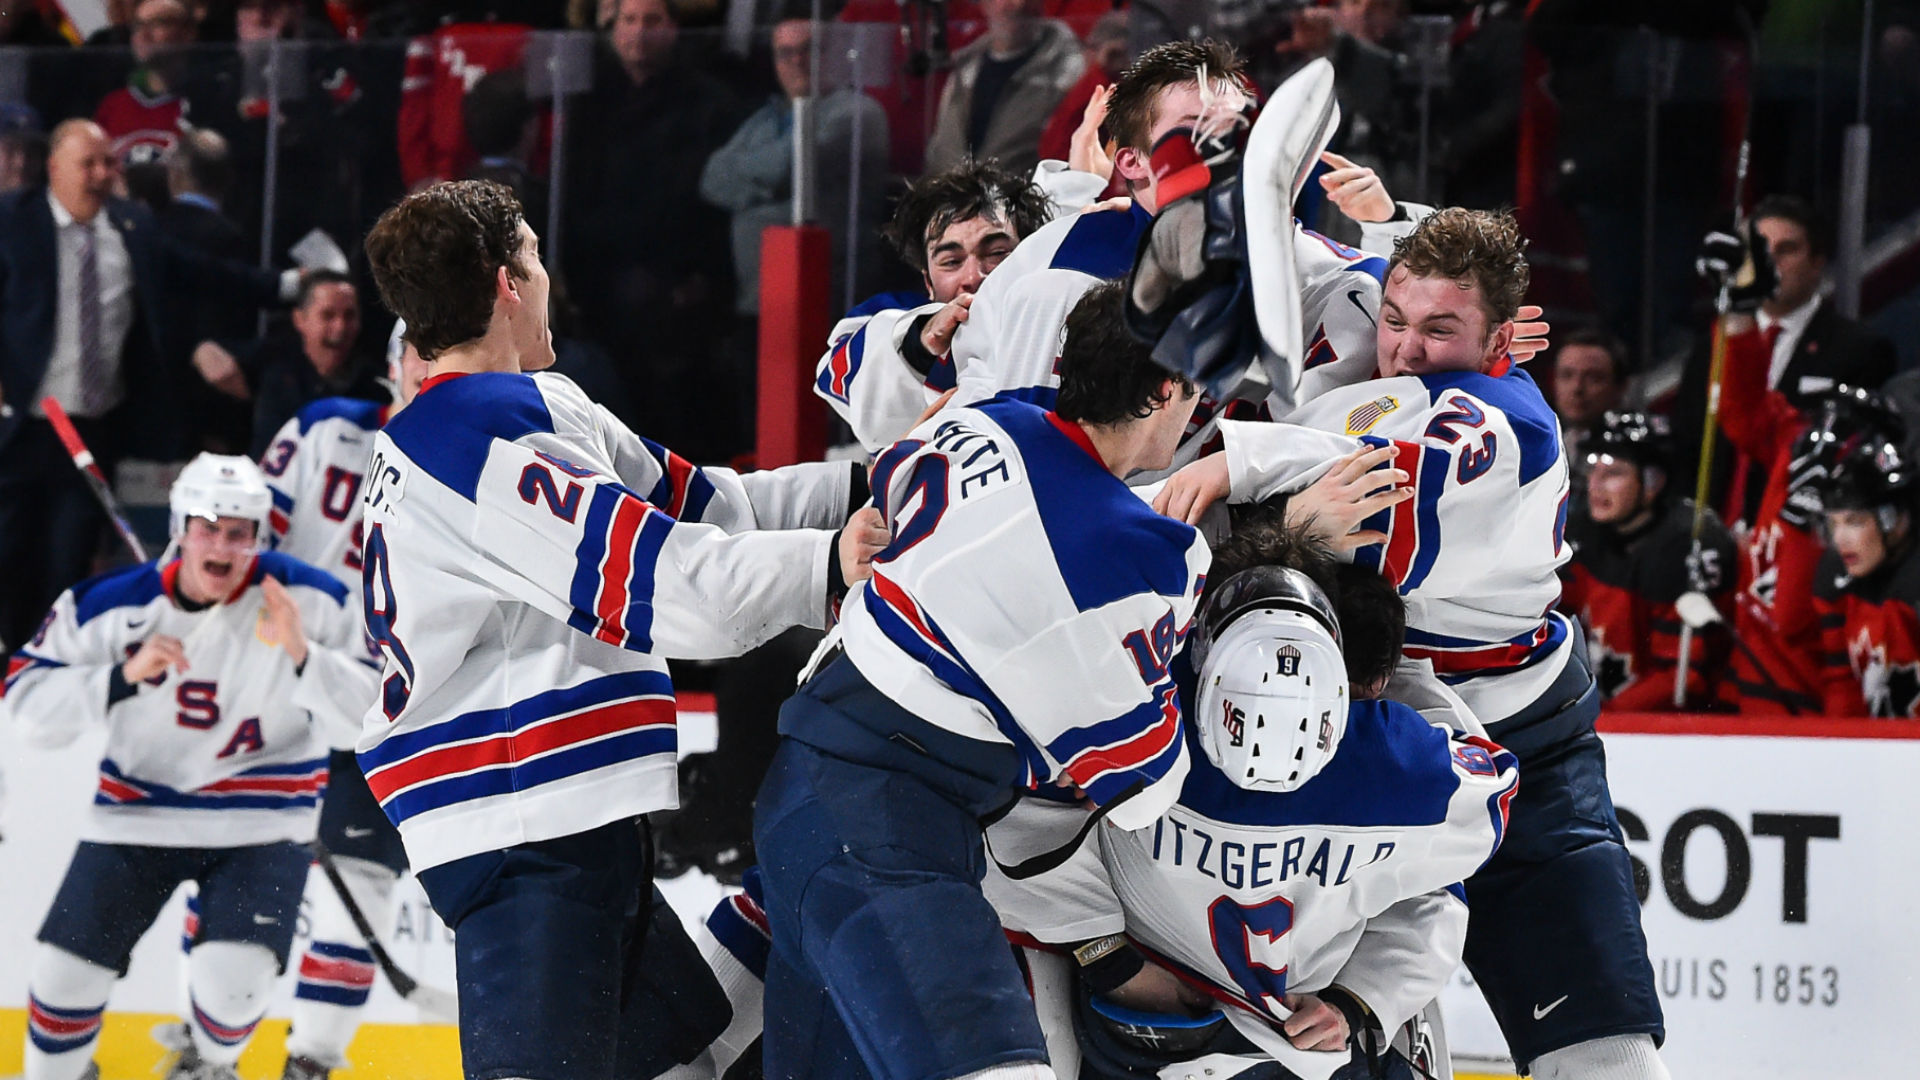 USA Hockey should not feel great about World Juniors win